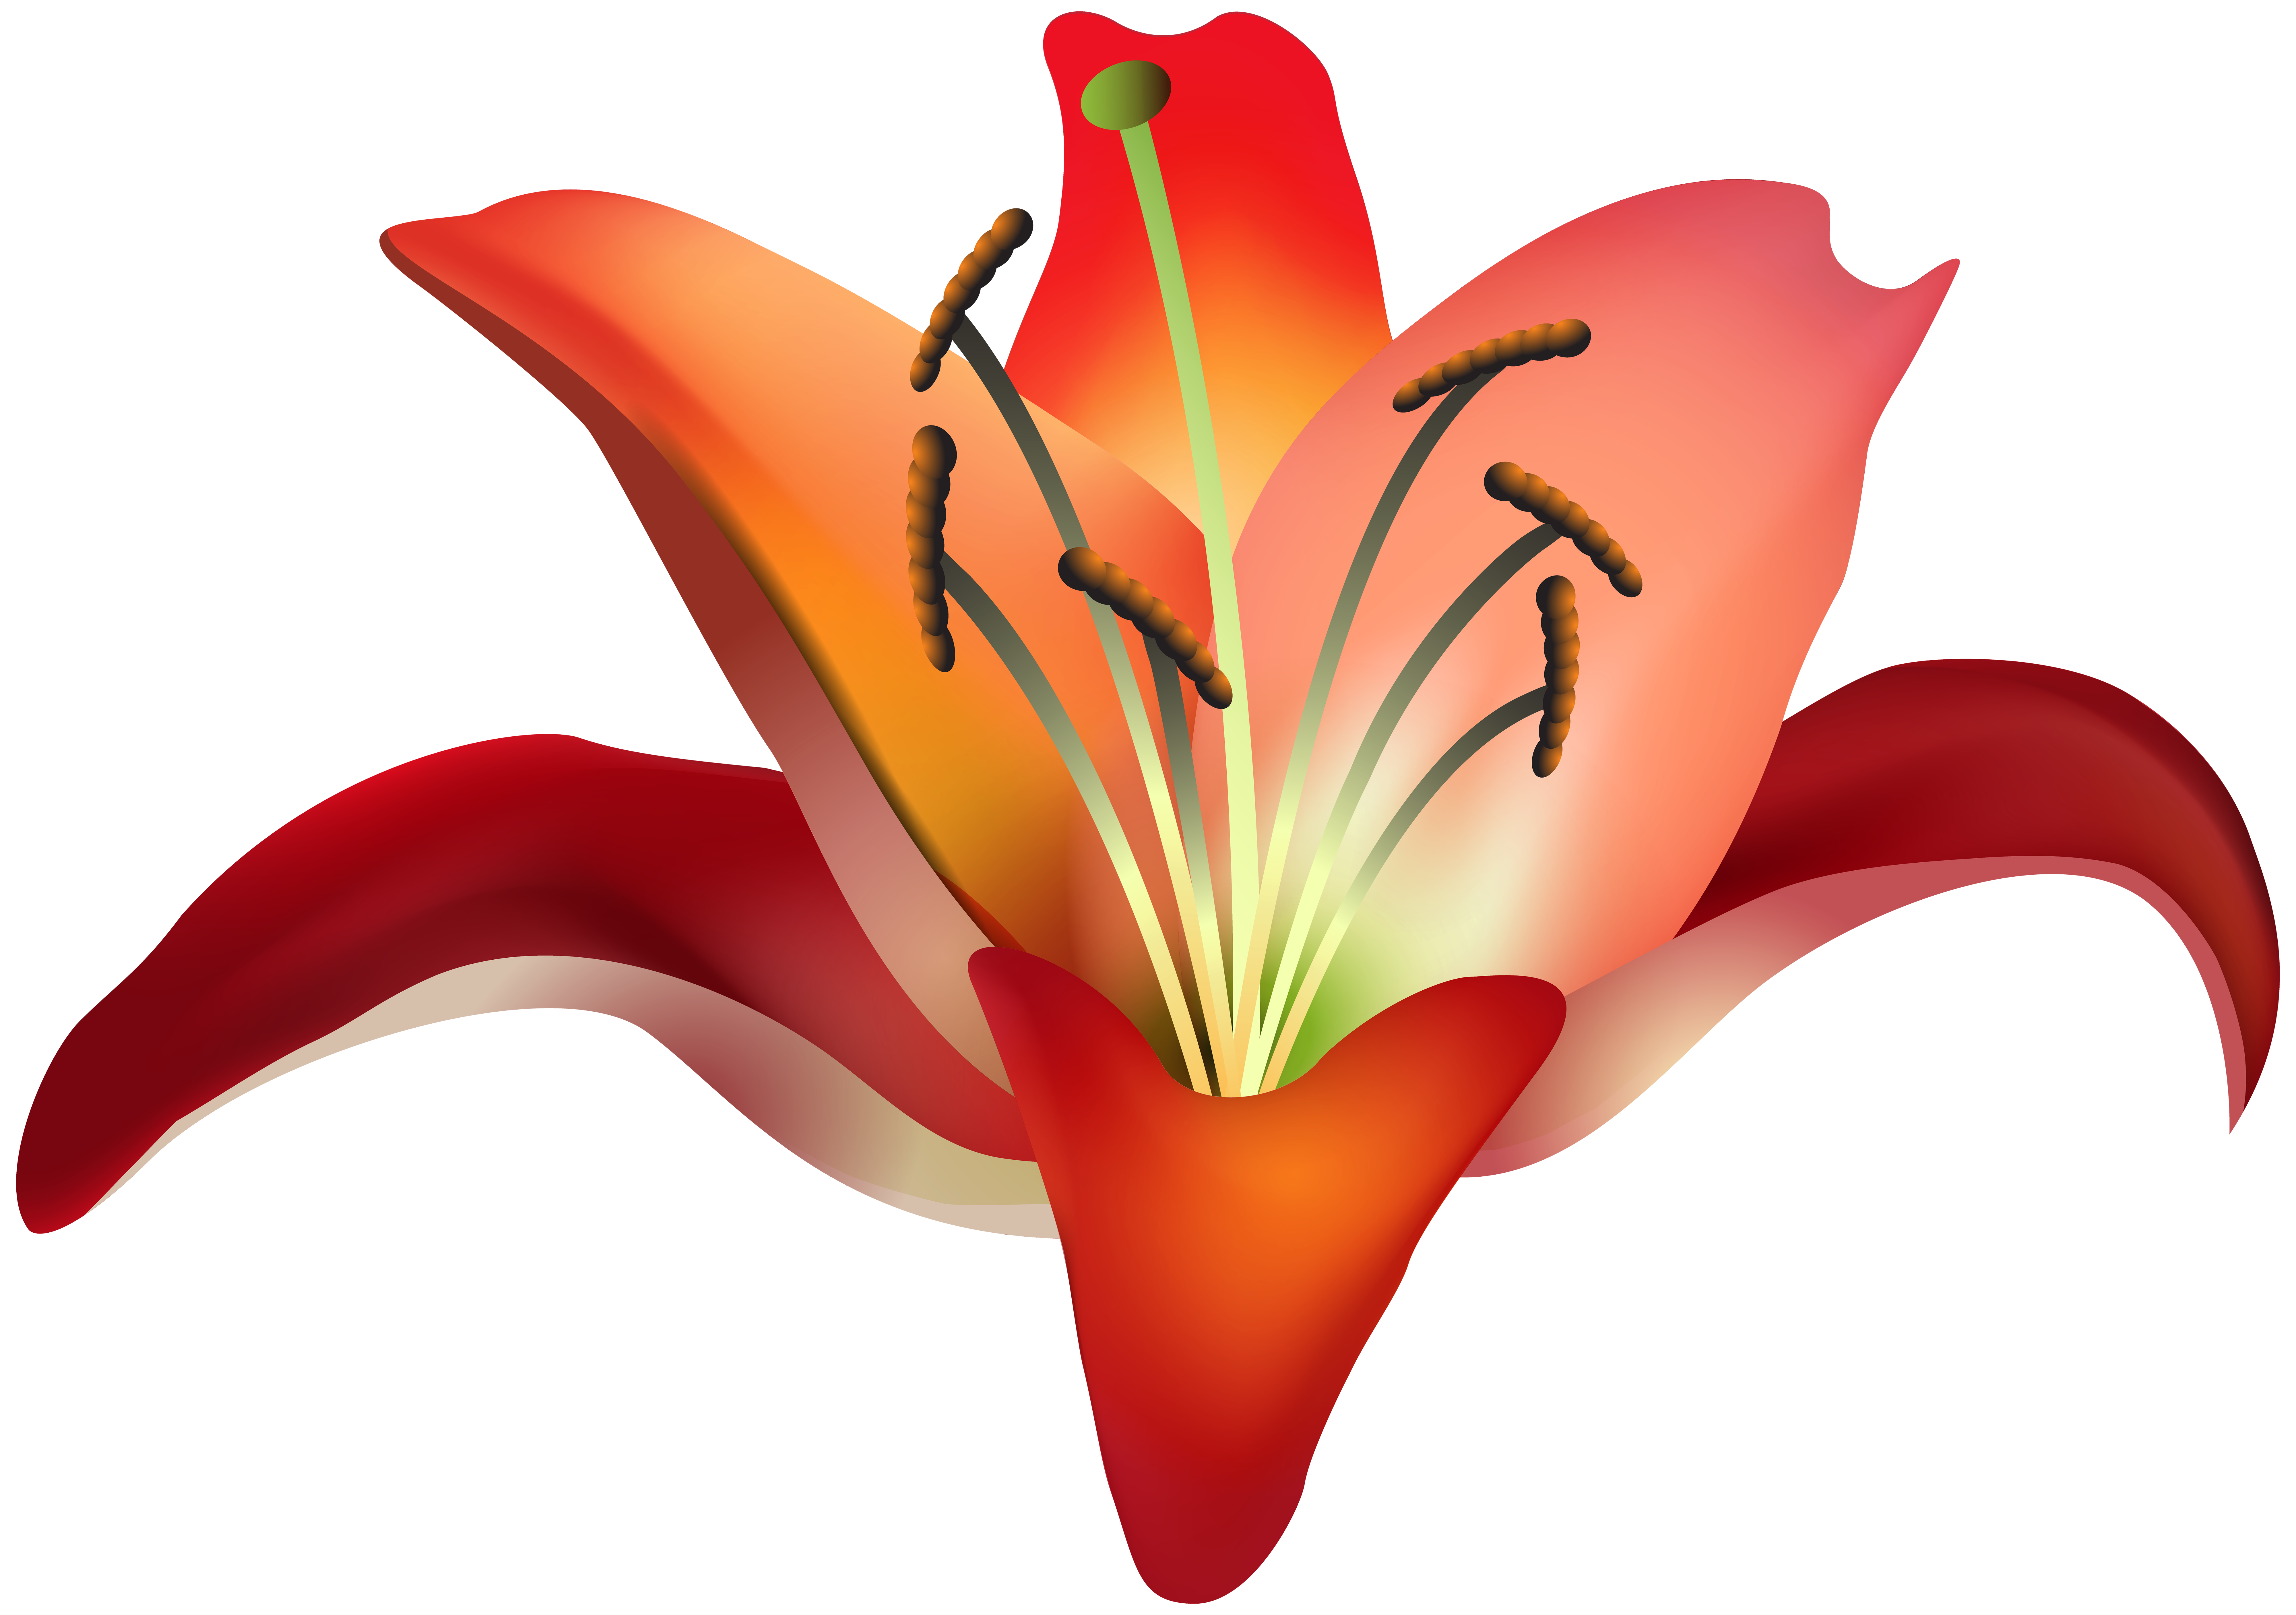 Red Flower clipart nice view #13